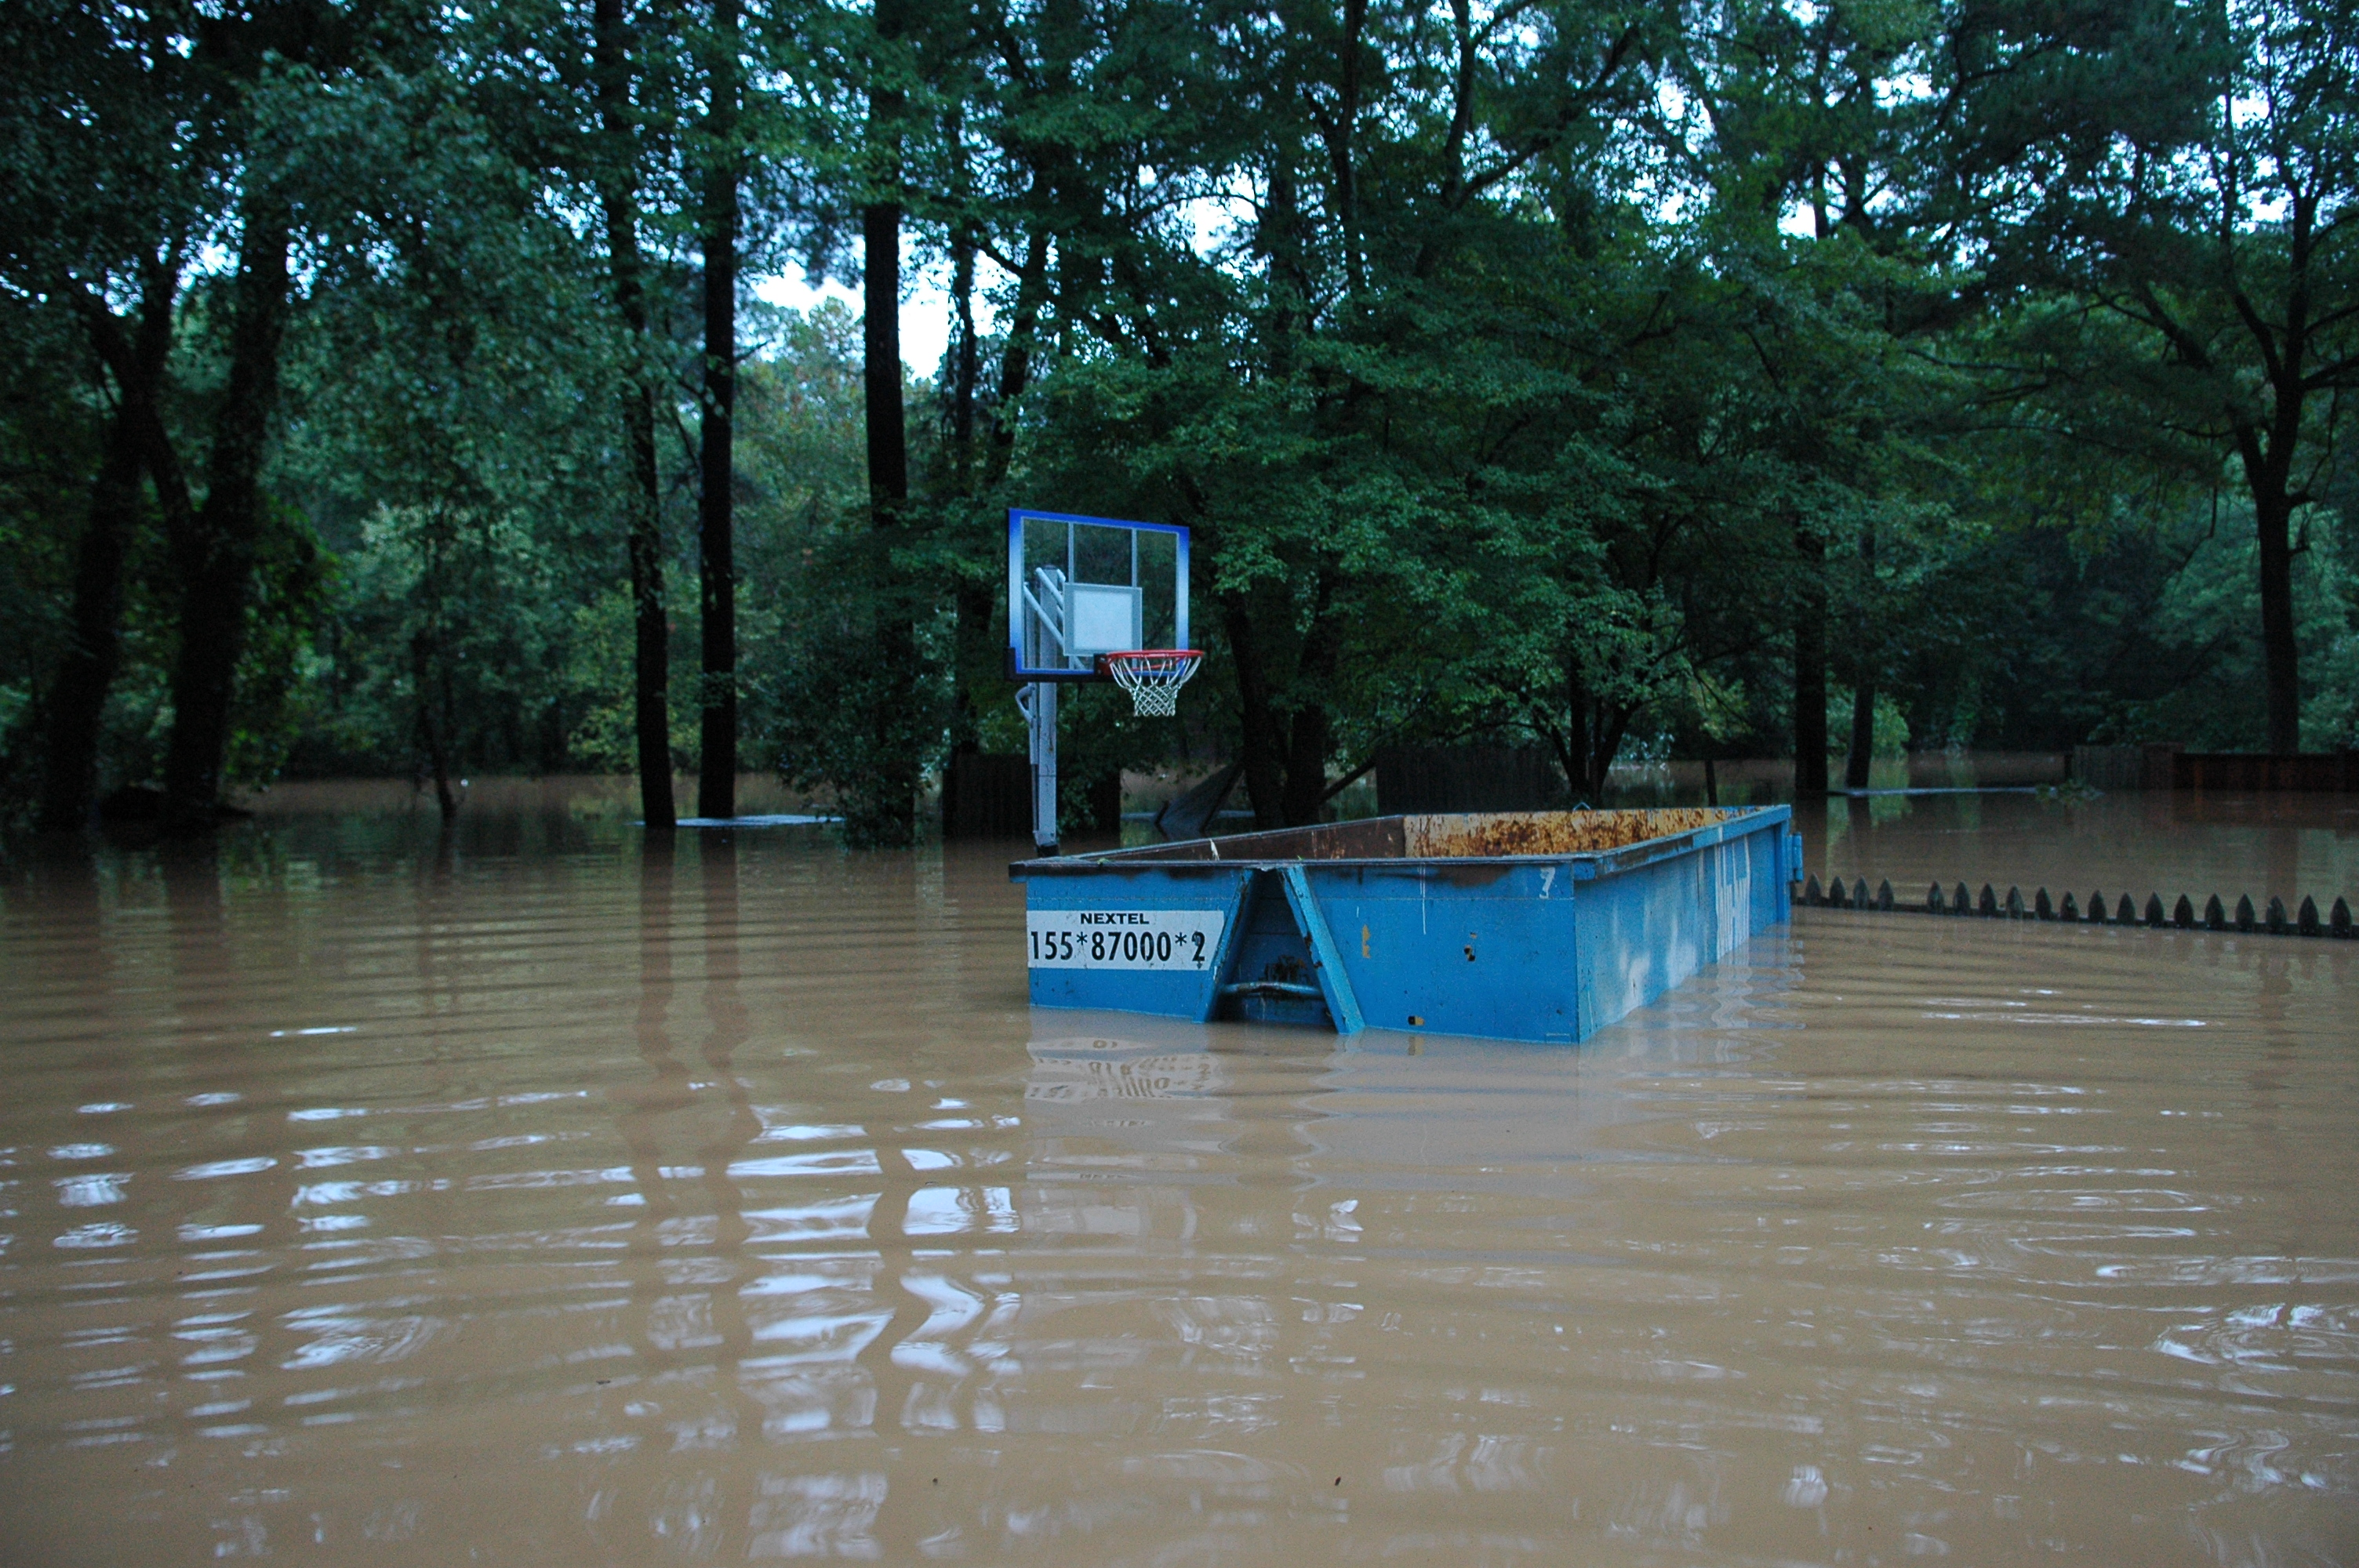 Fema Elevation Certification Commercial Services Georgia Land